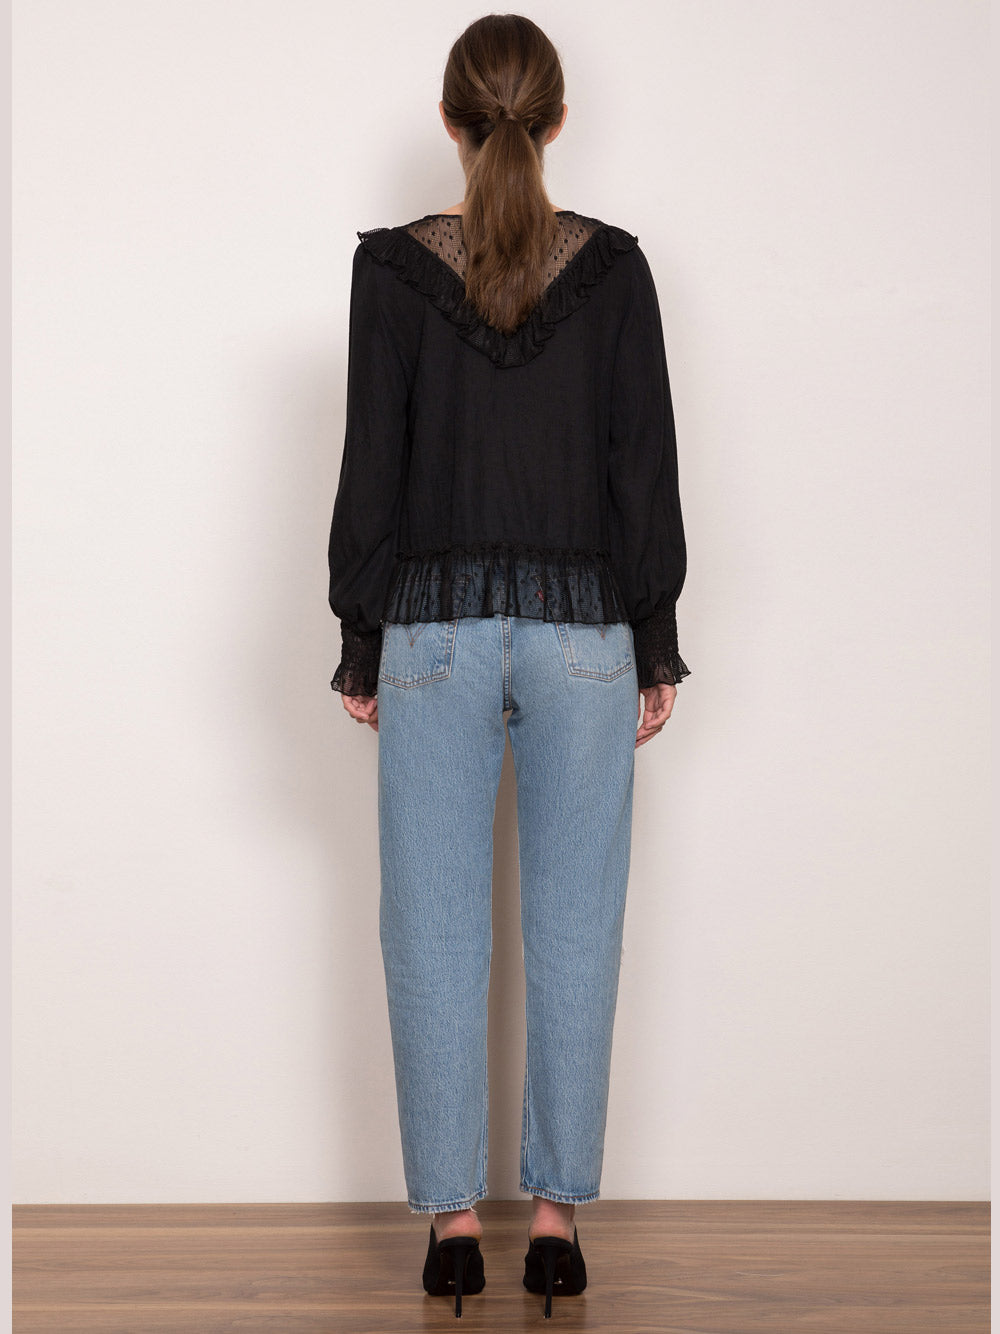 WISH Amore Blouse - Black